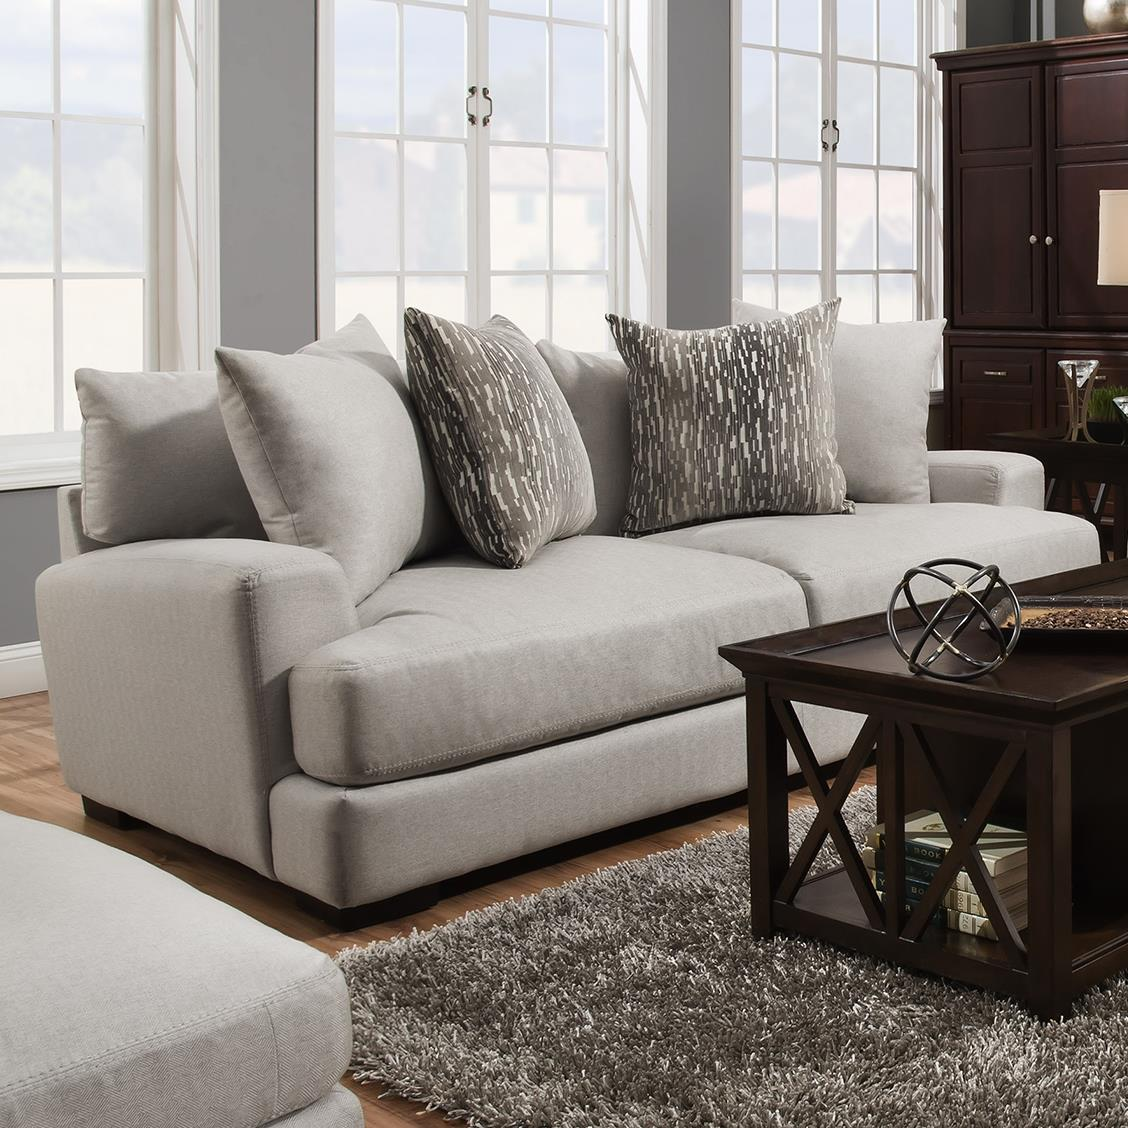 Opprinnelig Franklin Oslo 80840 Sofa with Two Seat Cushion Construction YI-76